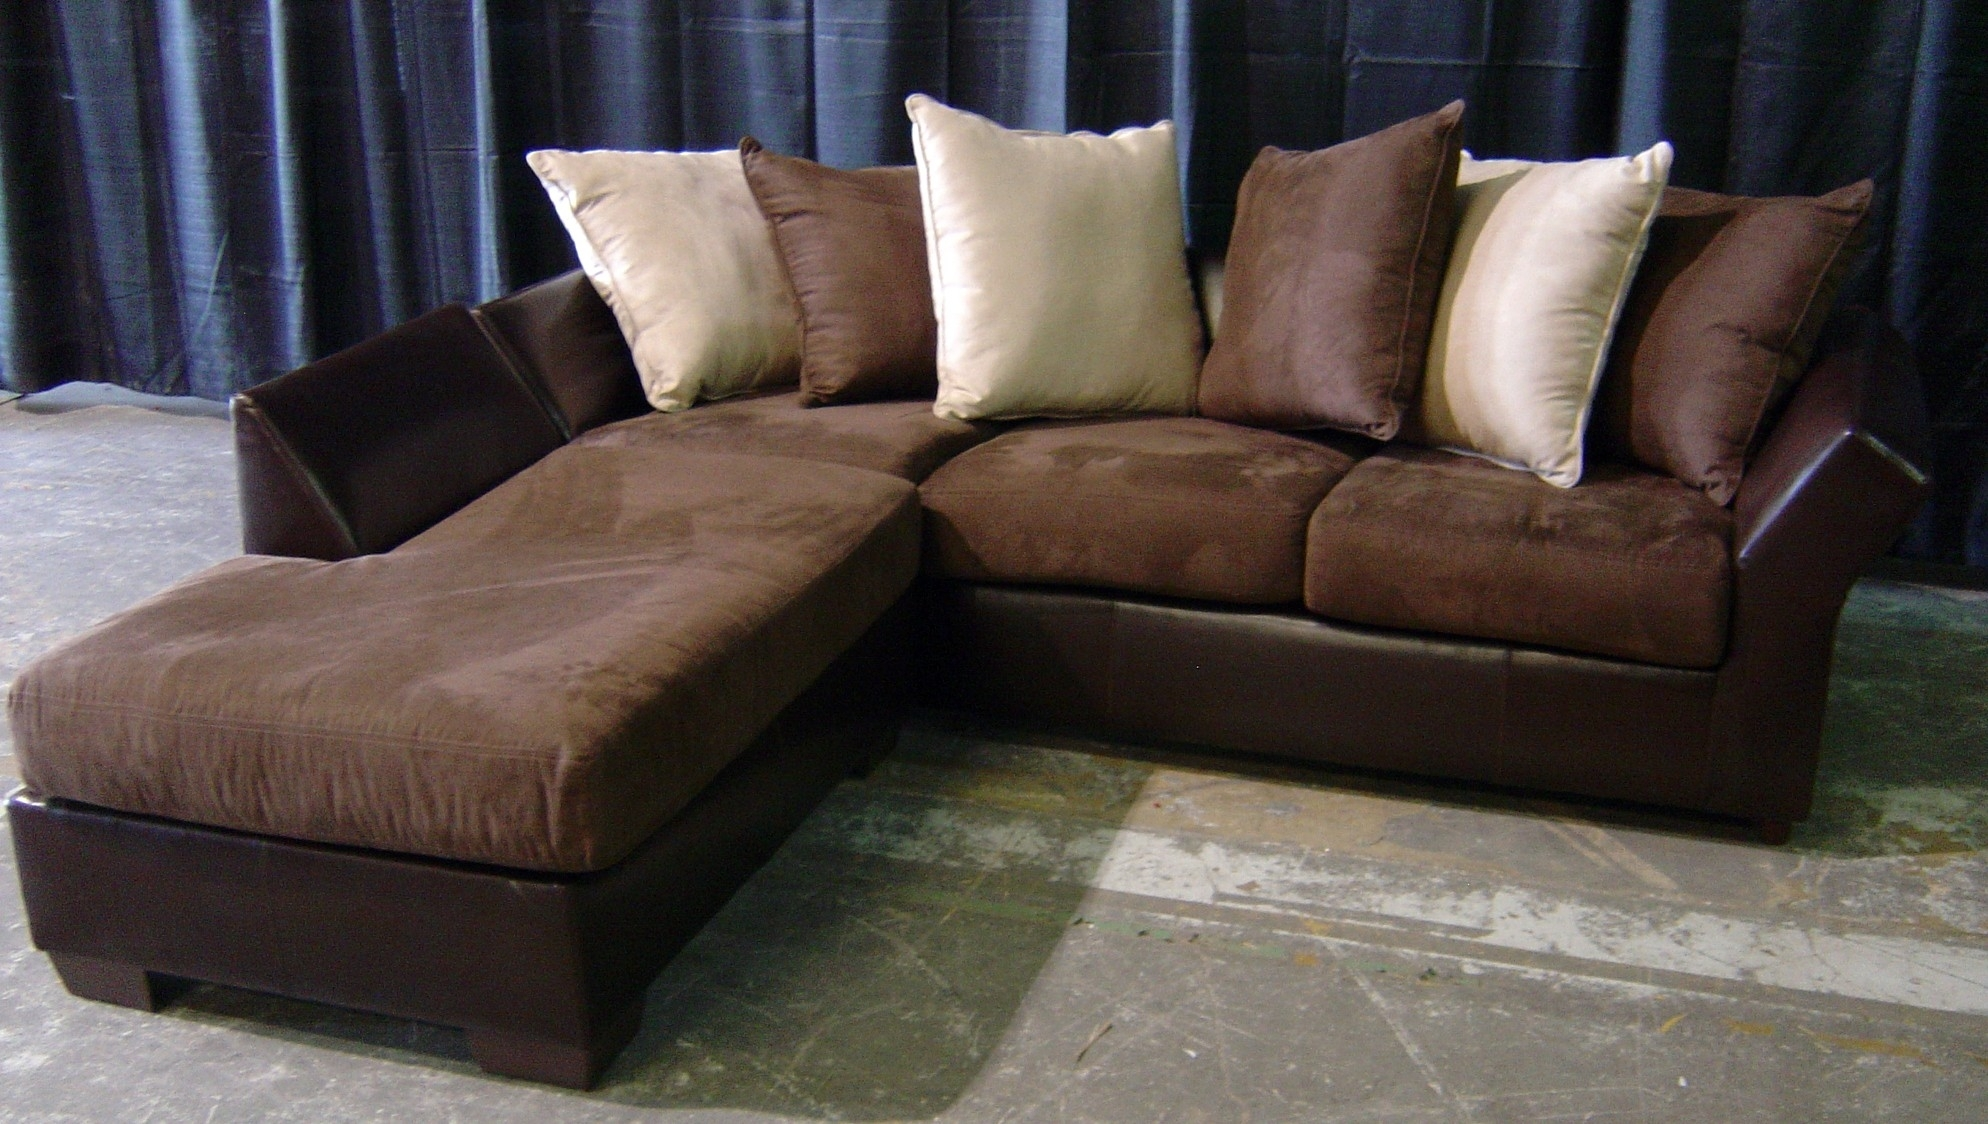 Awesome Leather And Suede Sectional Sofa 63 For With Leather And For Leather And Suede Sectional Sofas (View 5 of 10)